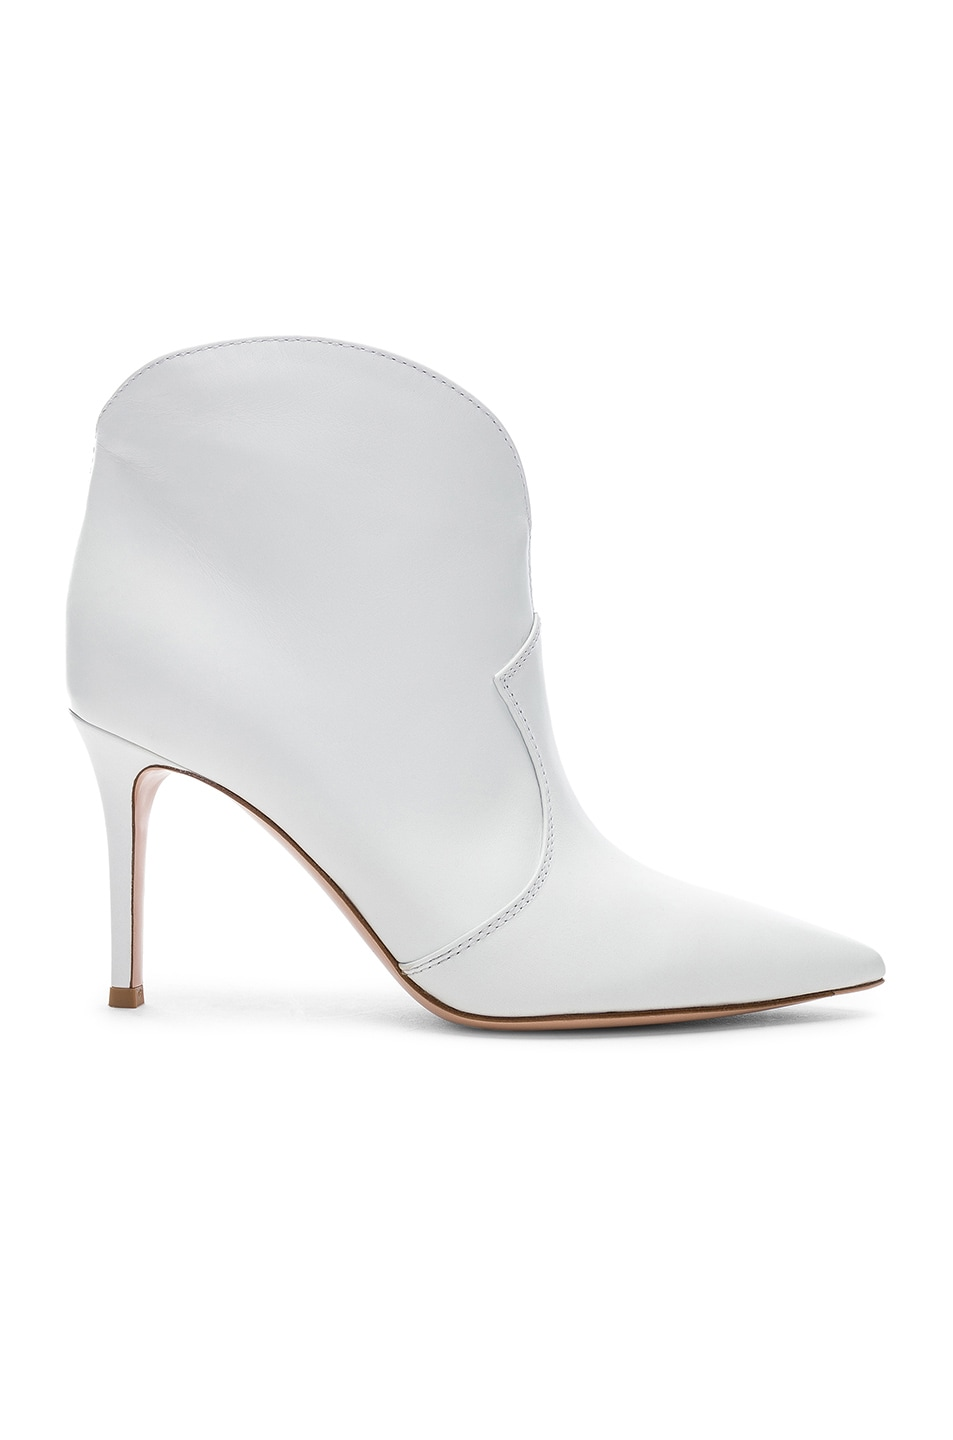 Image 1 of Gianvito Rossi Mable Mid Booties in White